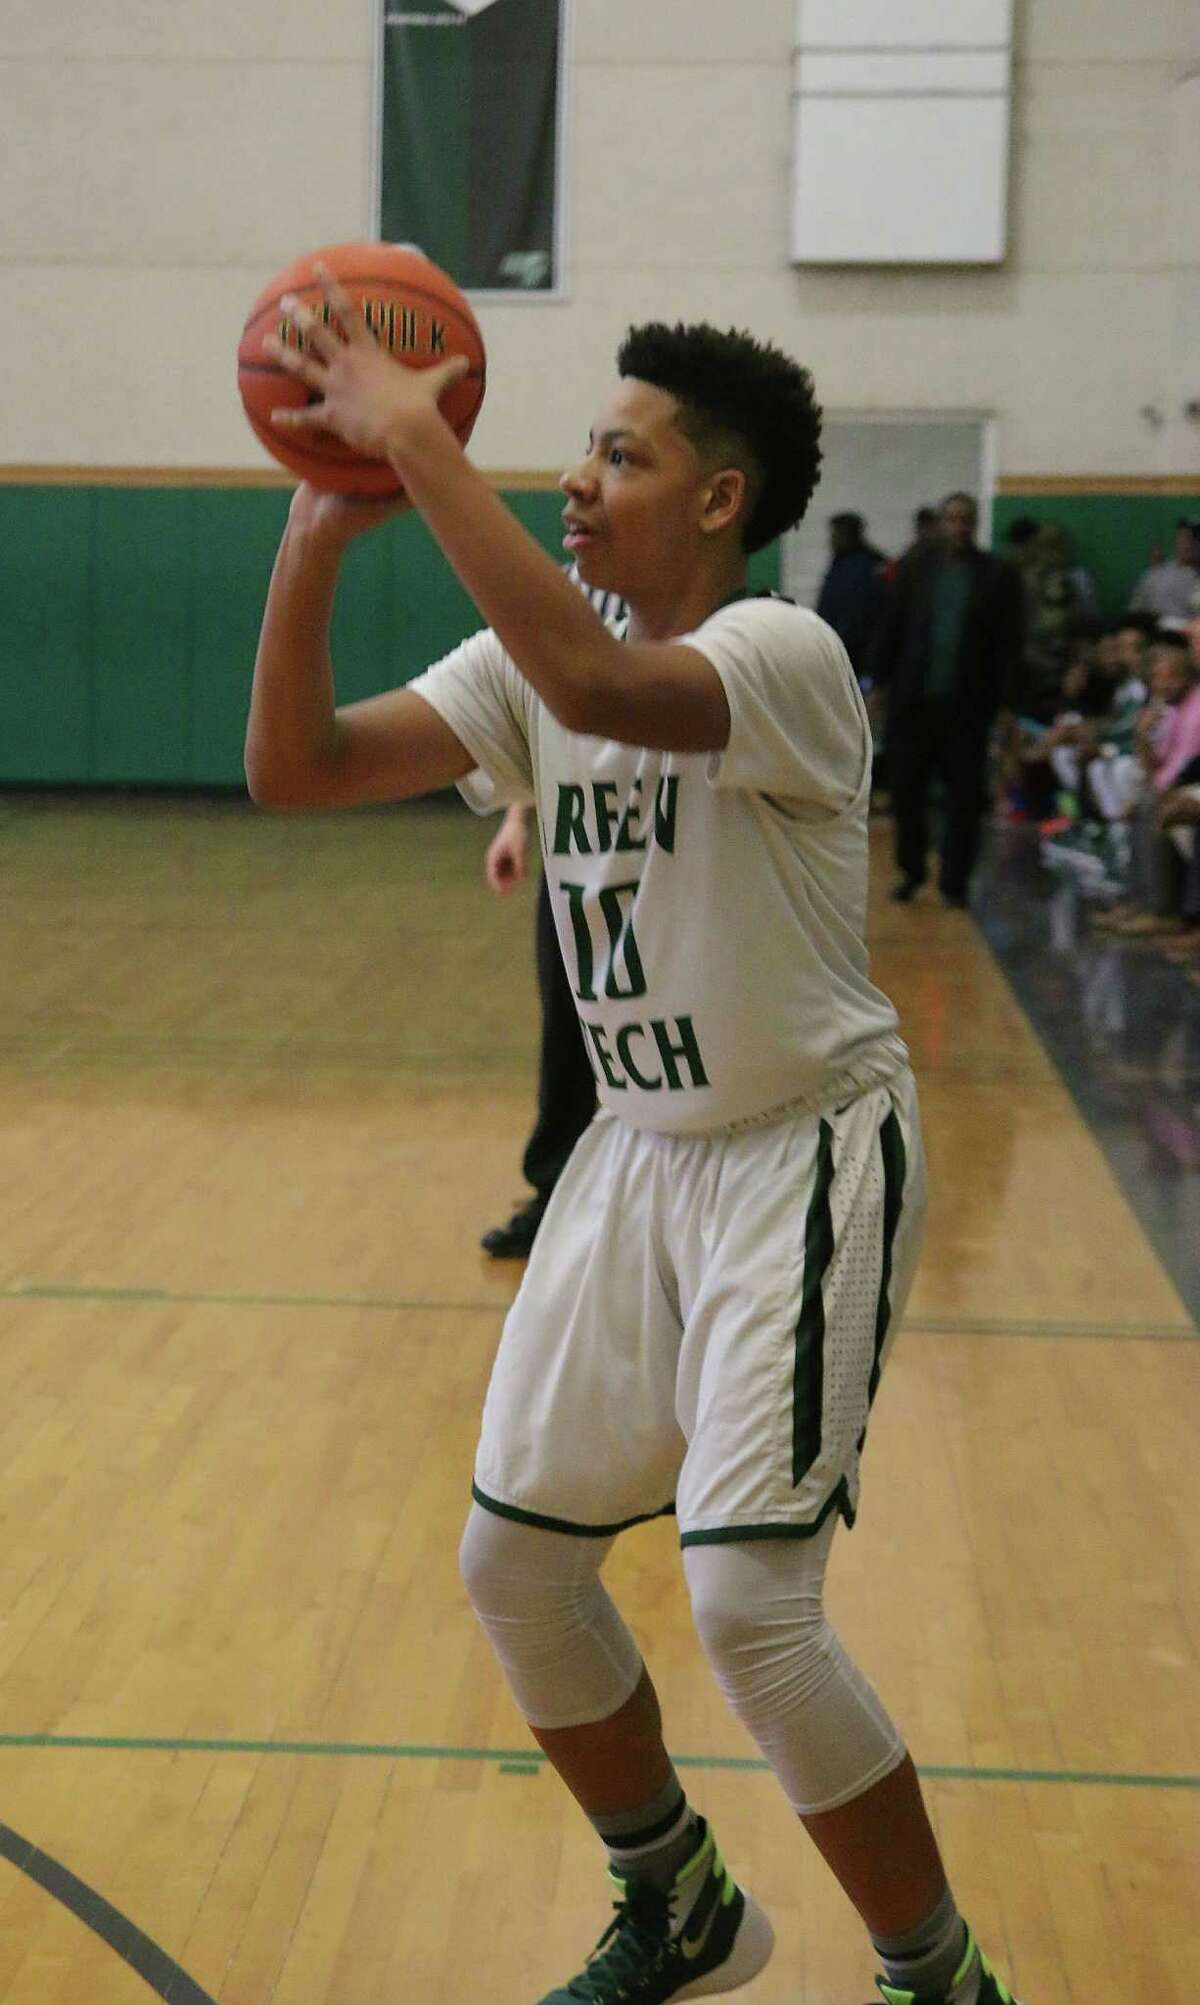 Green Tech's Derrick Rowland shoots for three during Monday's basketball matchup against Middletown at Green Tech High Charter School in Albany January 18, 2016. (Ed Burke / Special to the Times Union)